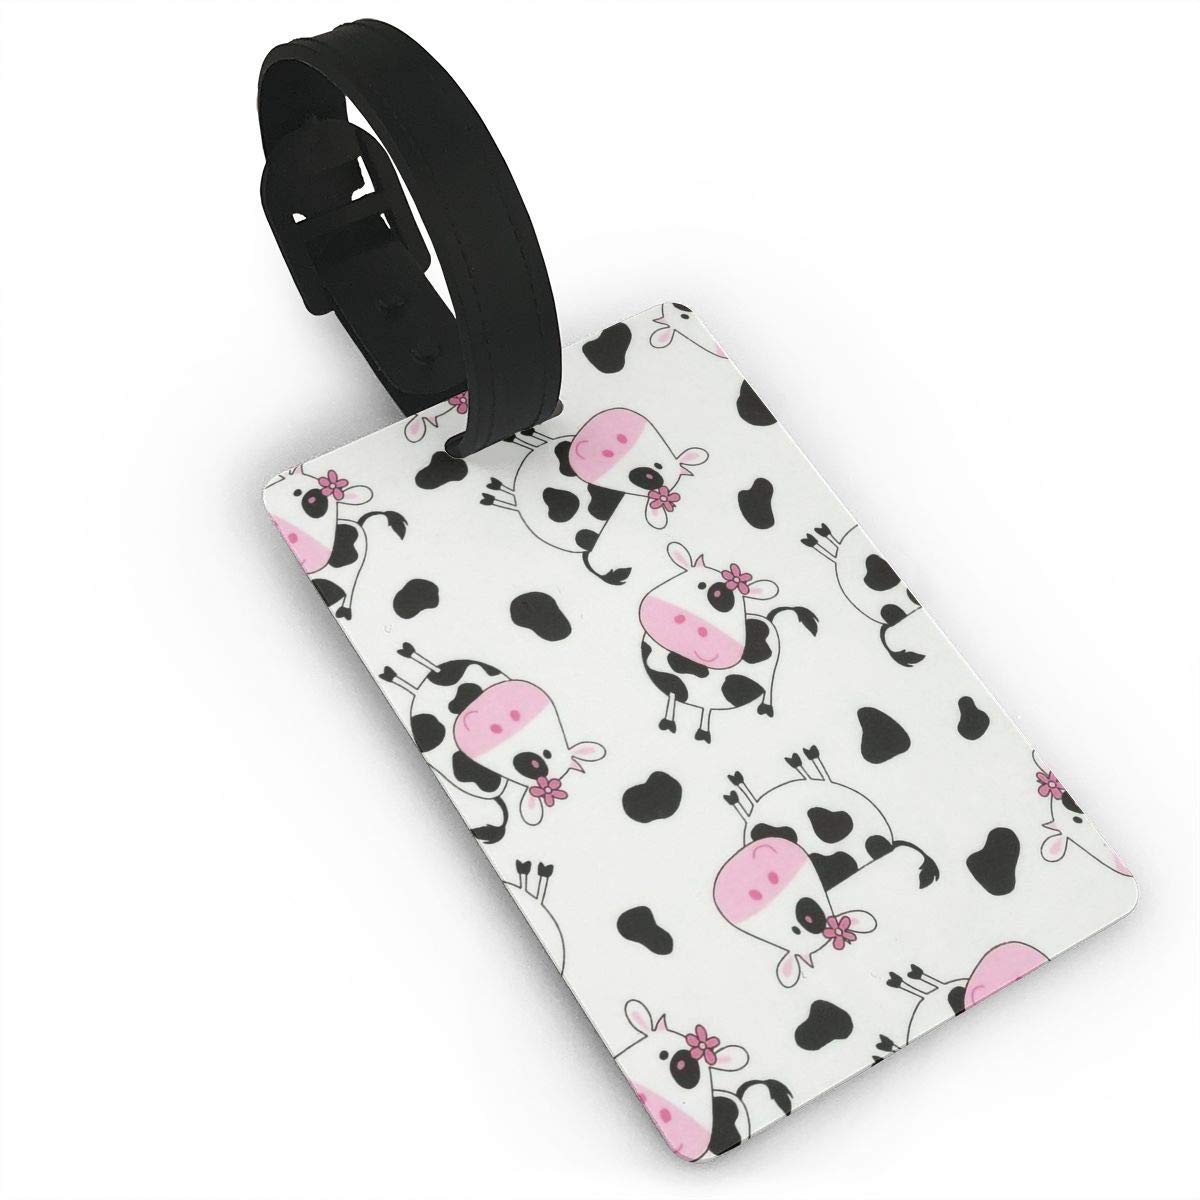 2 Pack Luggage Tags Cow Pattern Cruise Luggage Tag For Travel Tags Accessories